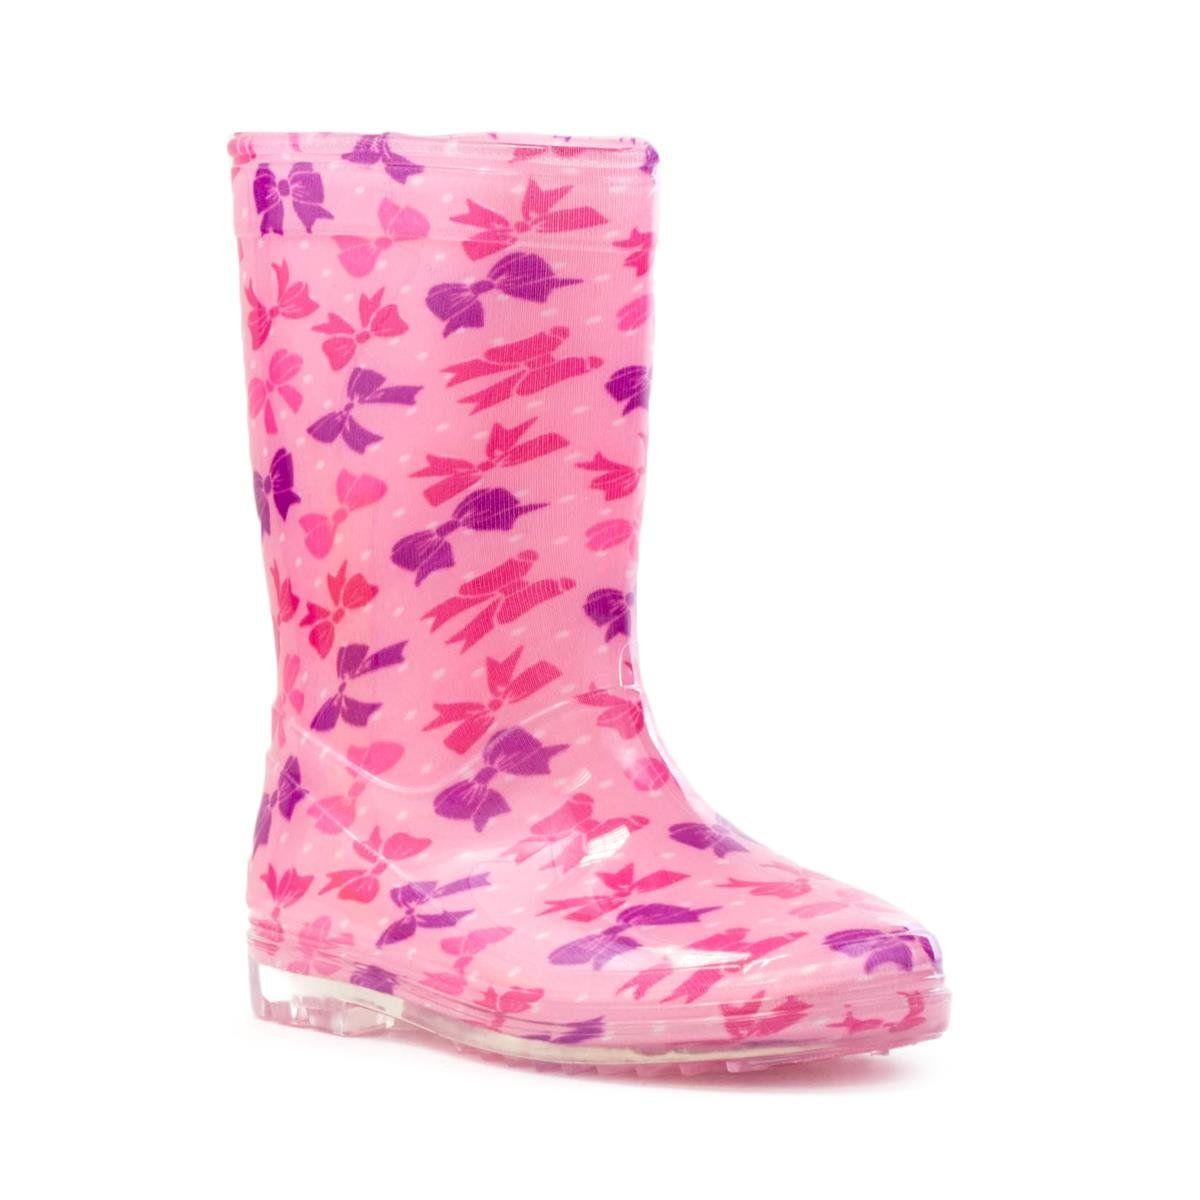 Zone Hearts   Girls Pink Welly with Bow and Polka Dot Print  Size 9 Child  UK  10 Kids US  Pink Lining Textile